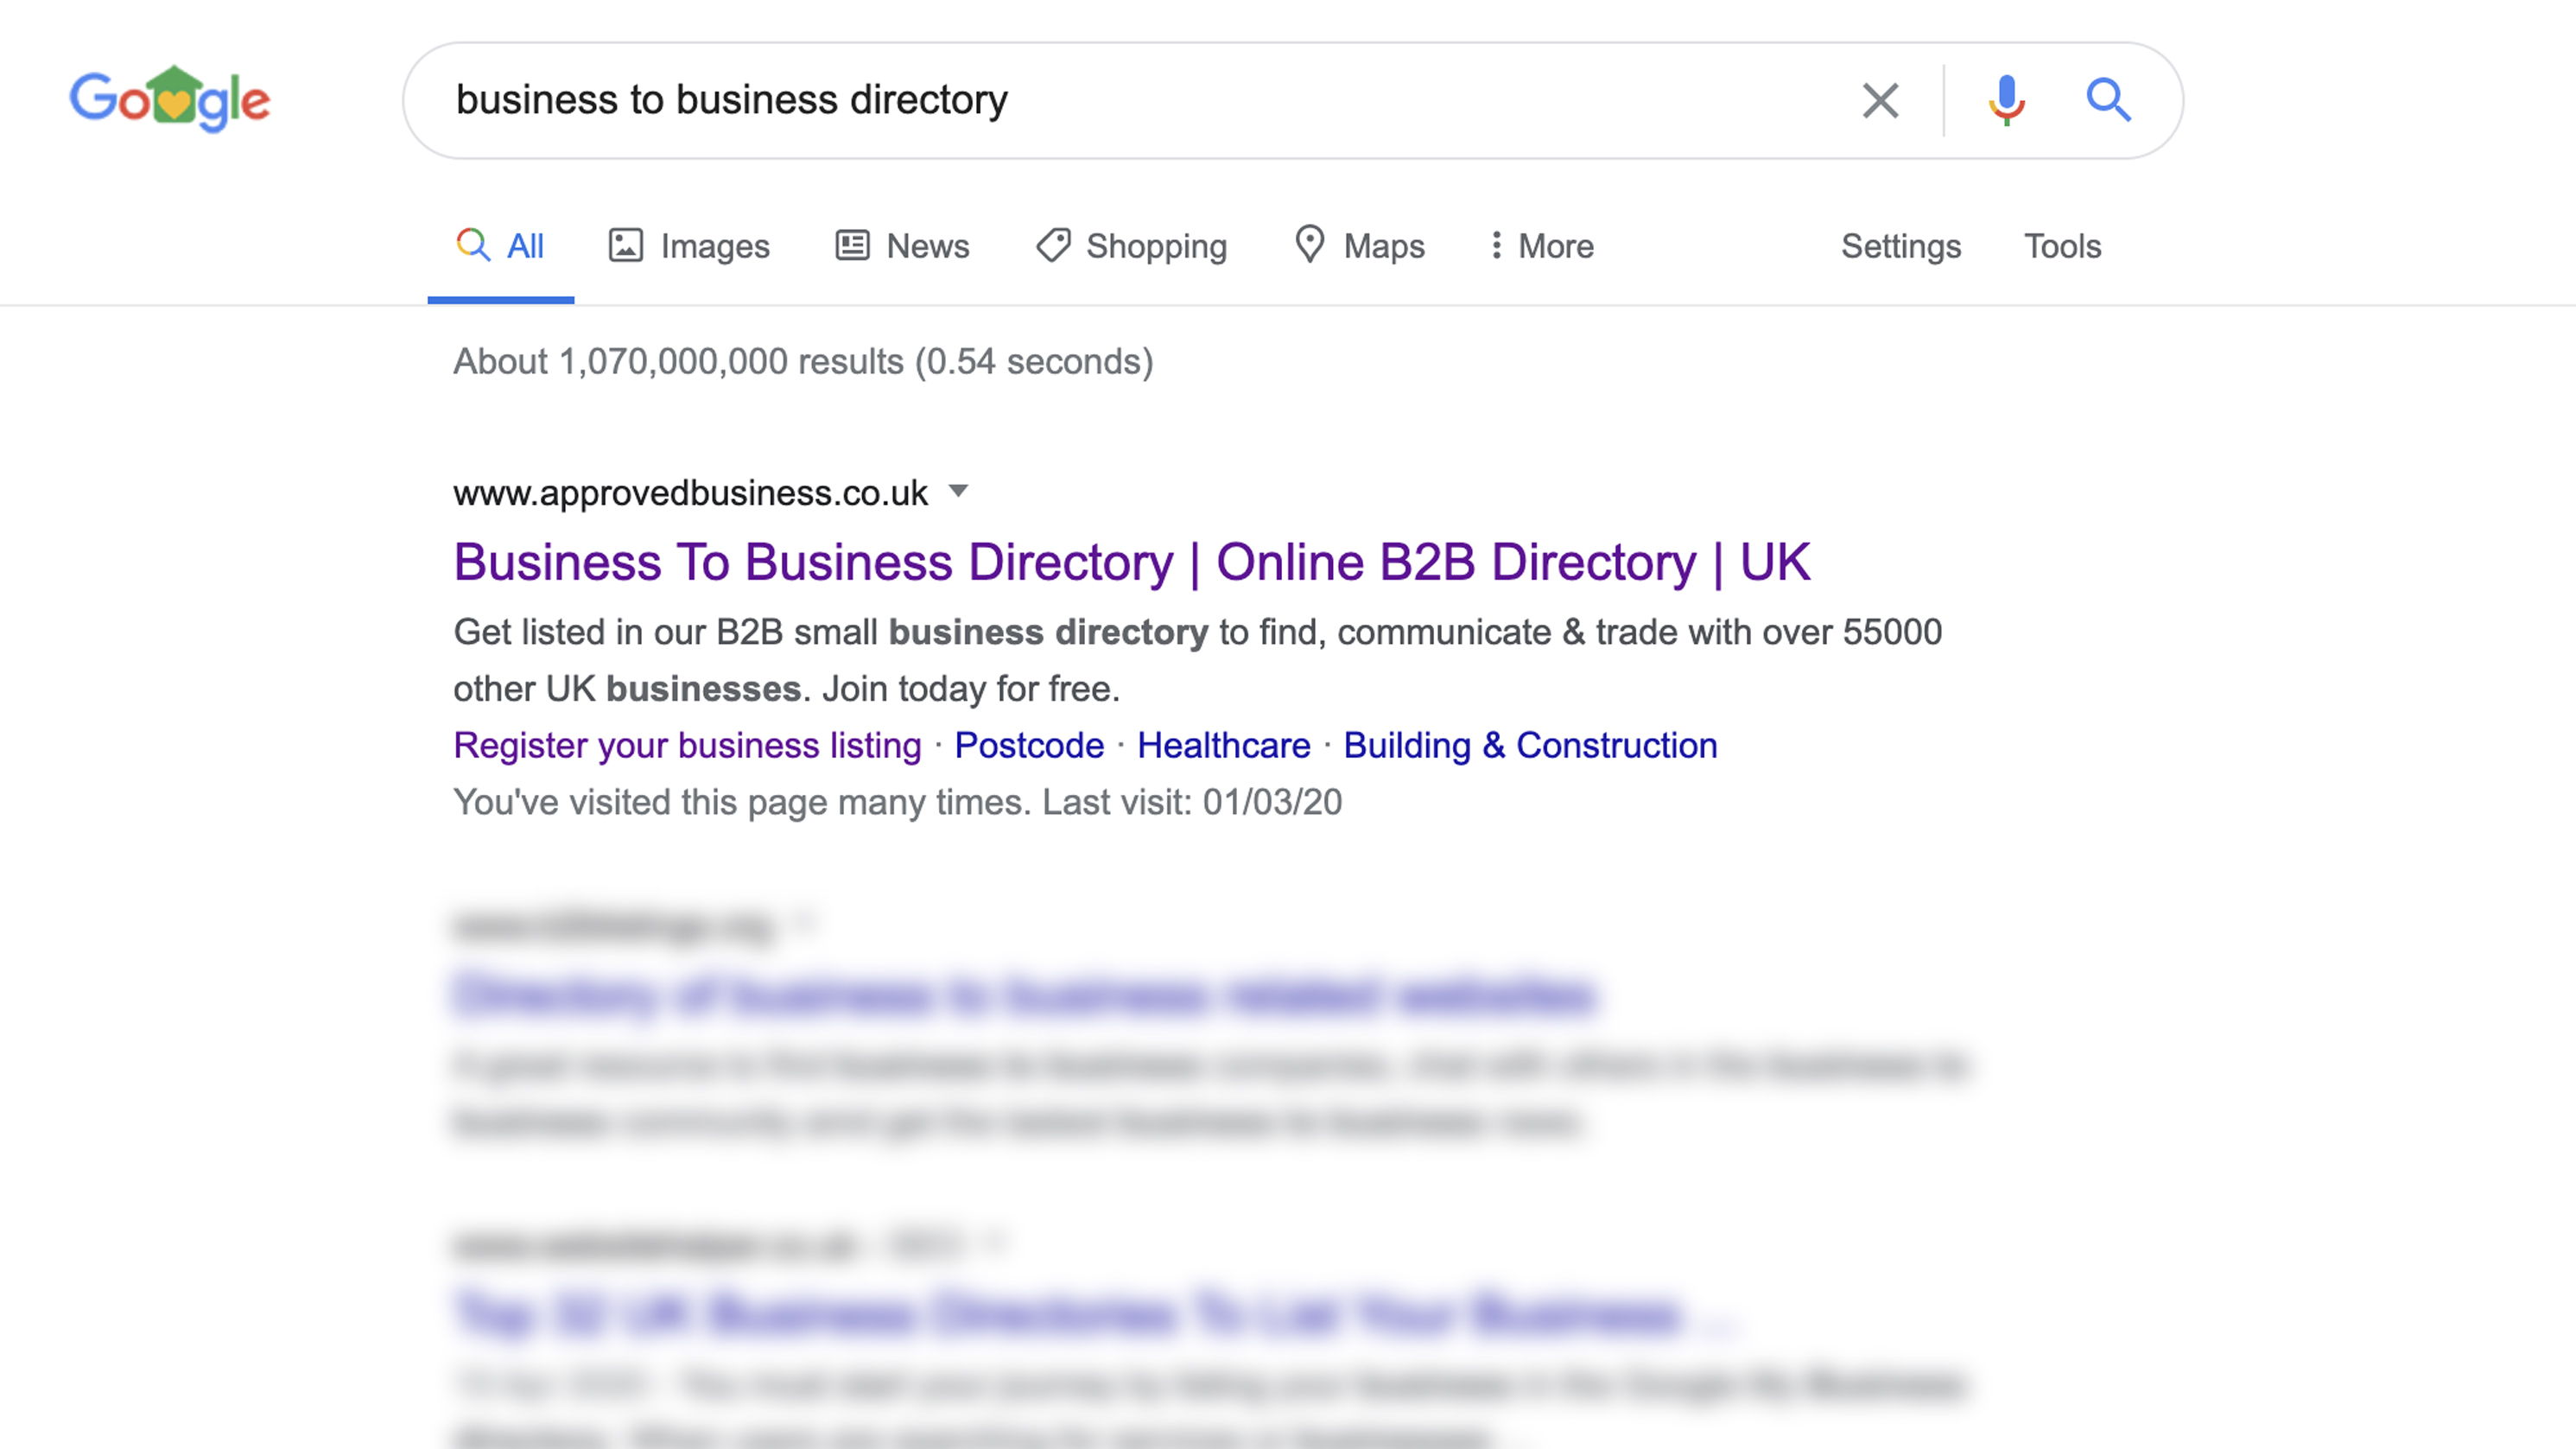 Google screenshot showing business to business directory